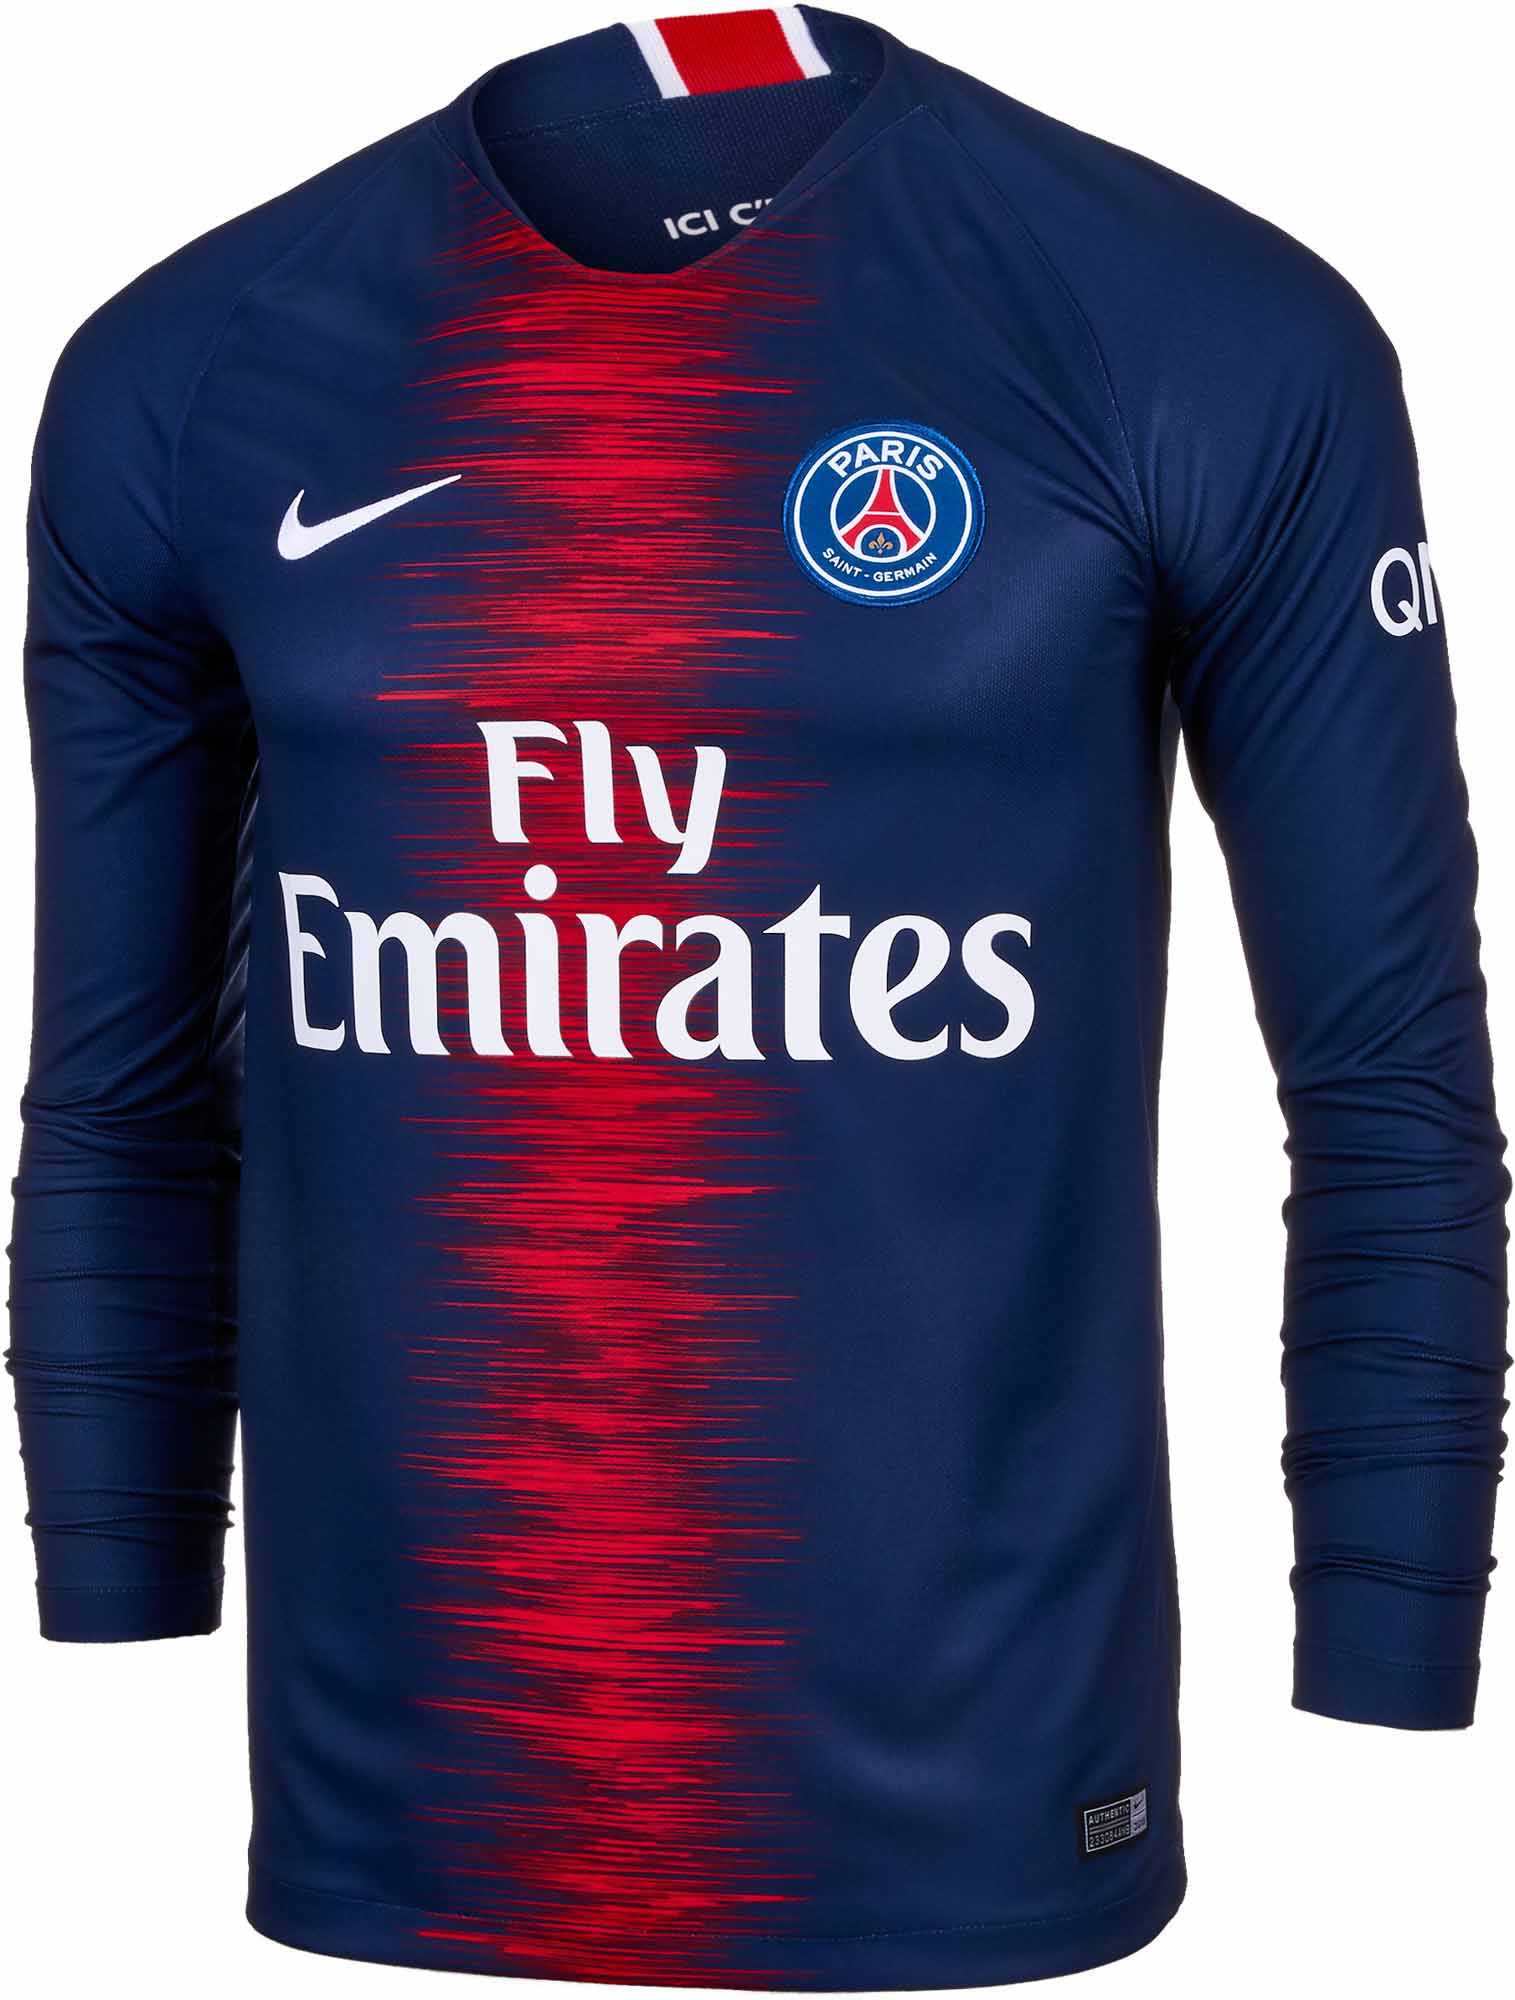 54d37e3a3 Nike PSG Home L/S Jersey - Midnight Navy/White - Soccer Master